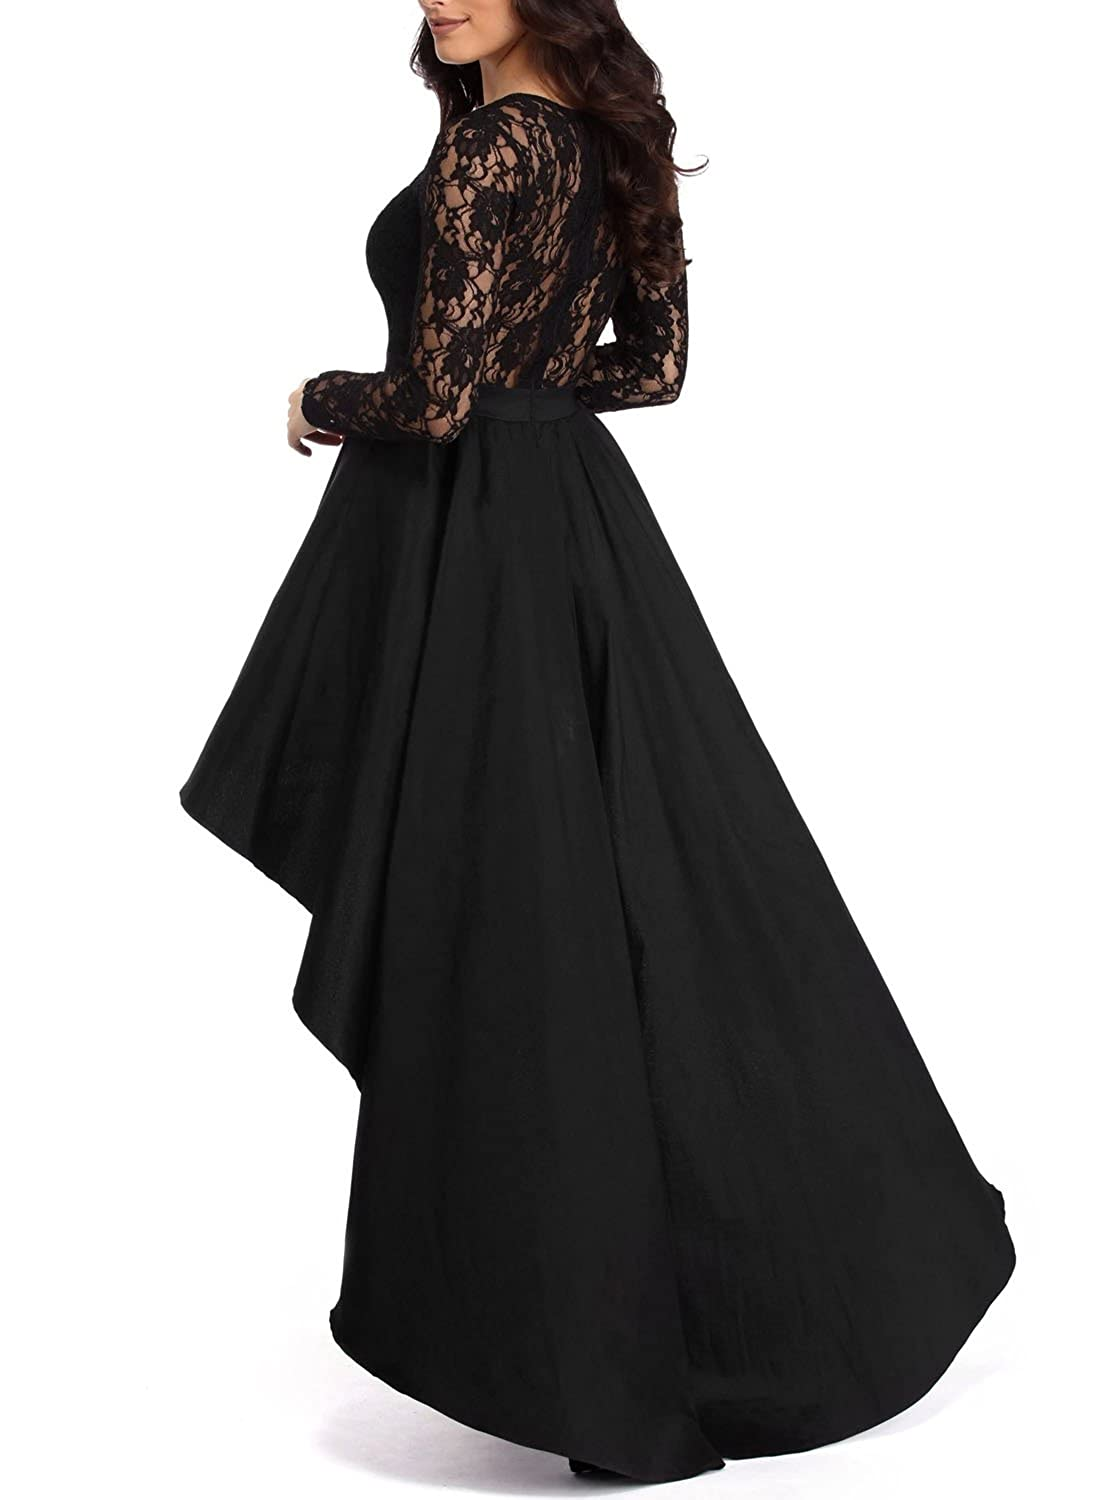 7ffc36ca00f Elapsy Womens Long Sleeve Lace High Low Satin Prom Evening Dress Cocktail  Party Gowns at Amazon Women s Clothing store